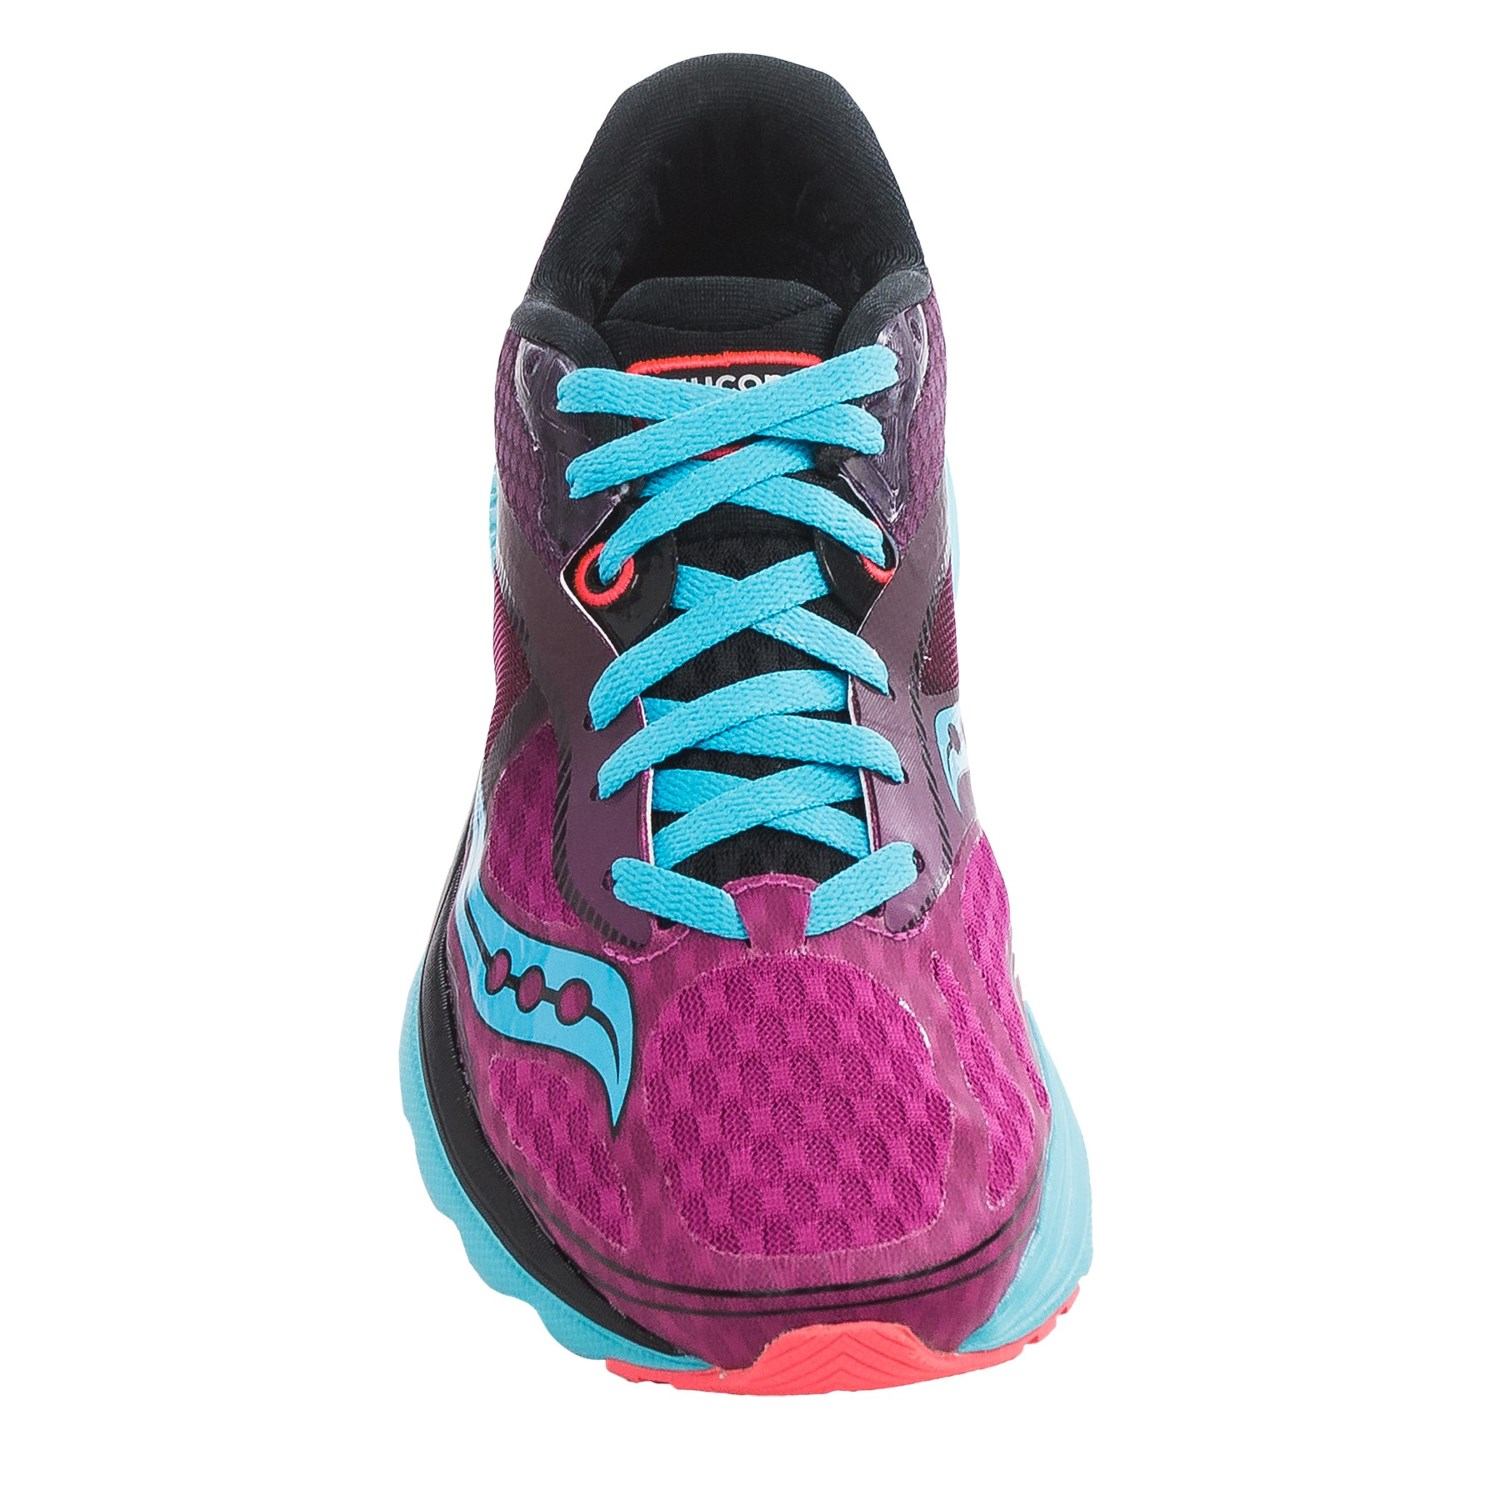 d1b62bc7dccd Buy saucony purple running shoes   Up to OFF47% Discounted